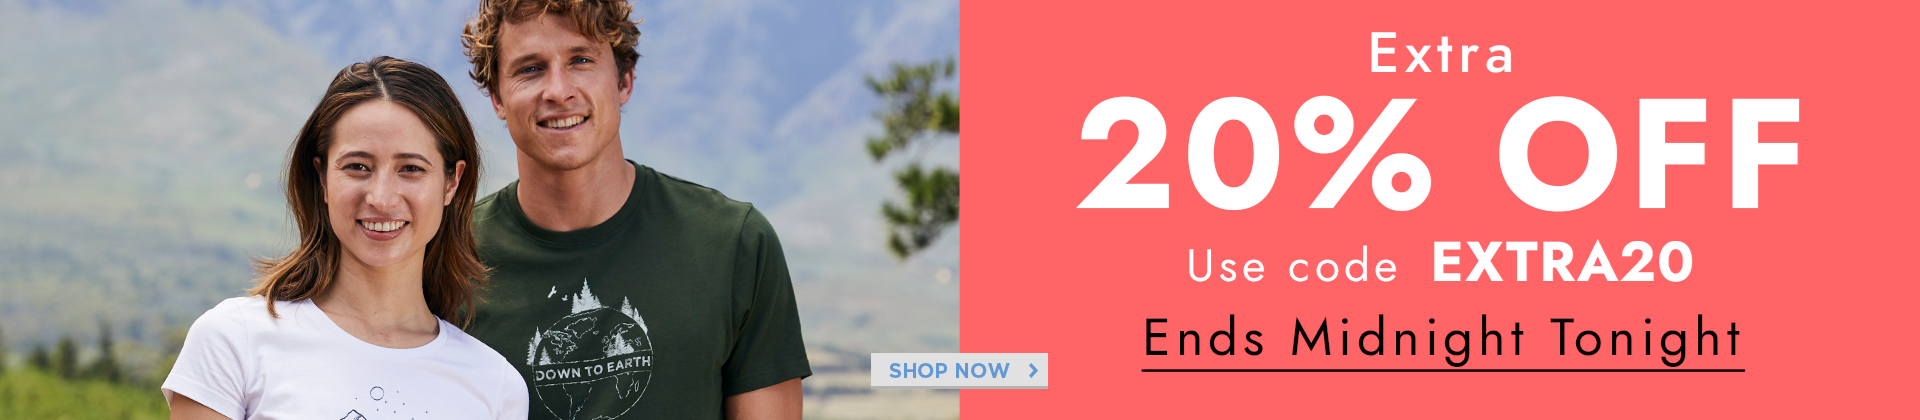 H1: 20% OFF ENDS CODE: EXTRA20